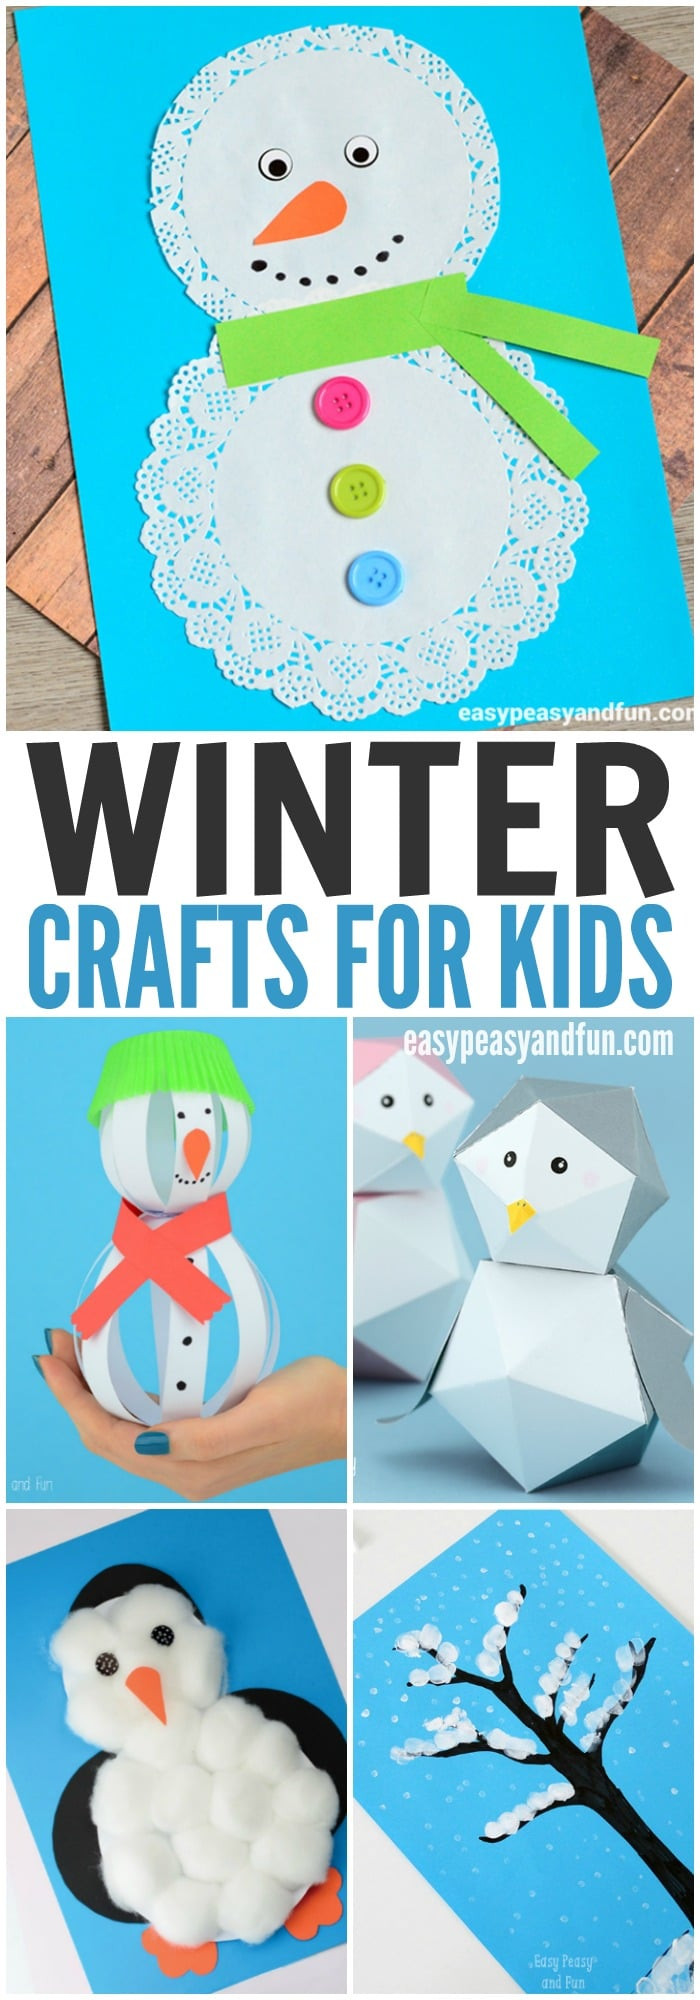 Best ideas about Winter Craft For Kids . Save or Pin Winter Crafts for Kids to Make Fun Art and Craft Ideas Now.